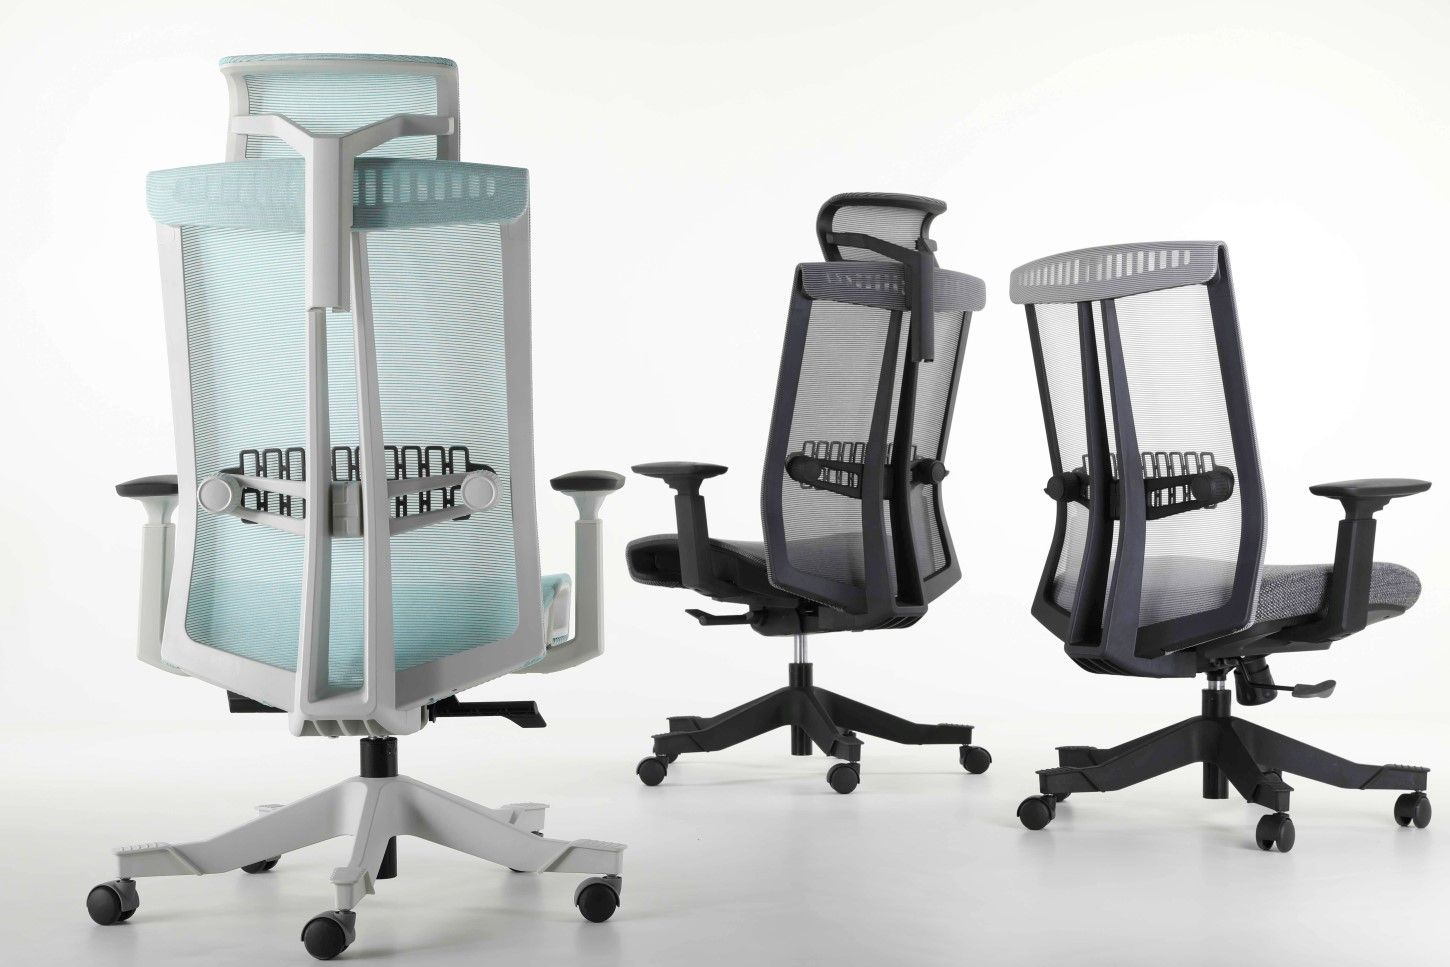 OFFICE CHAIRS. GUEST CHAIRS. STACKING CHAIRS. ERGONOMIC SEATING: